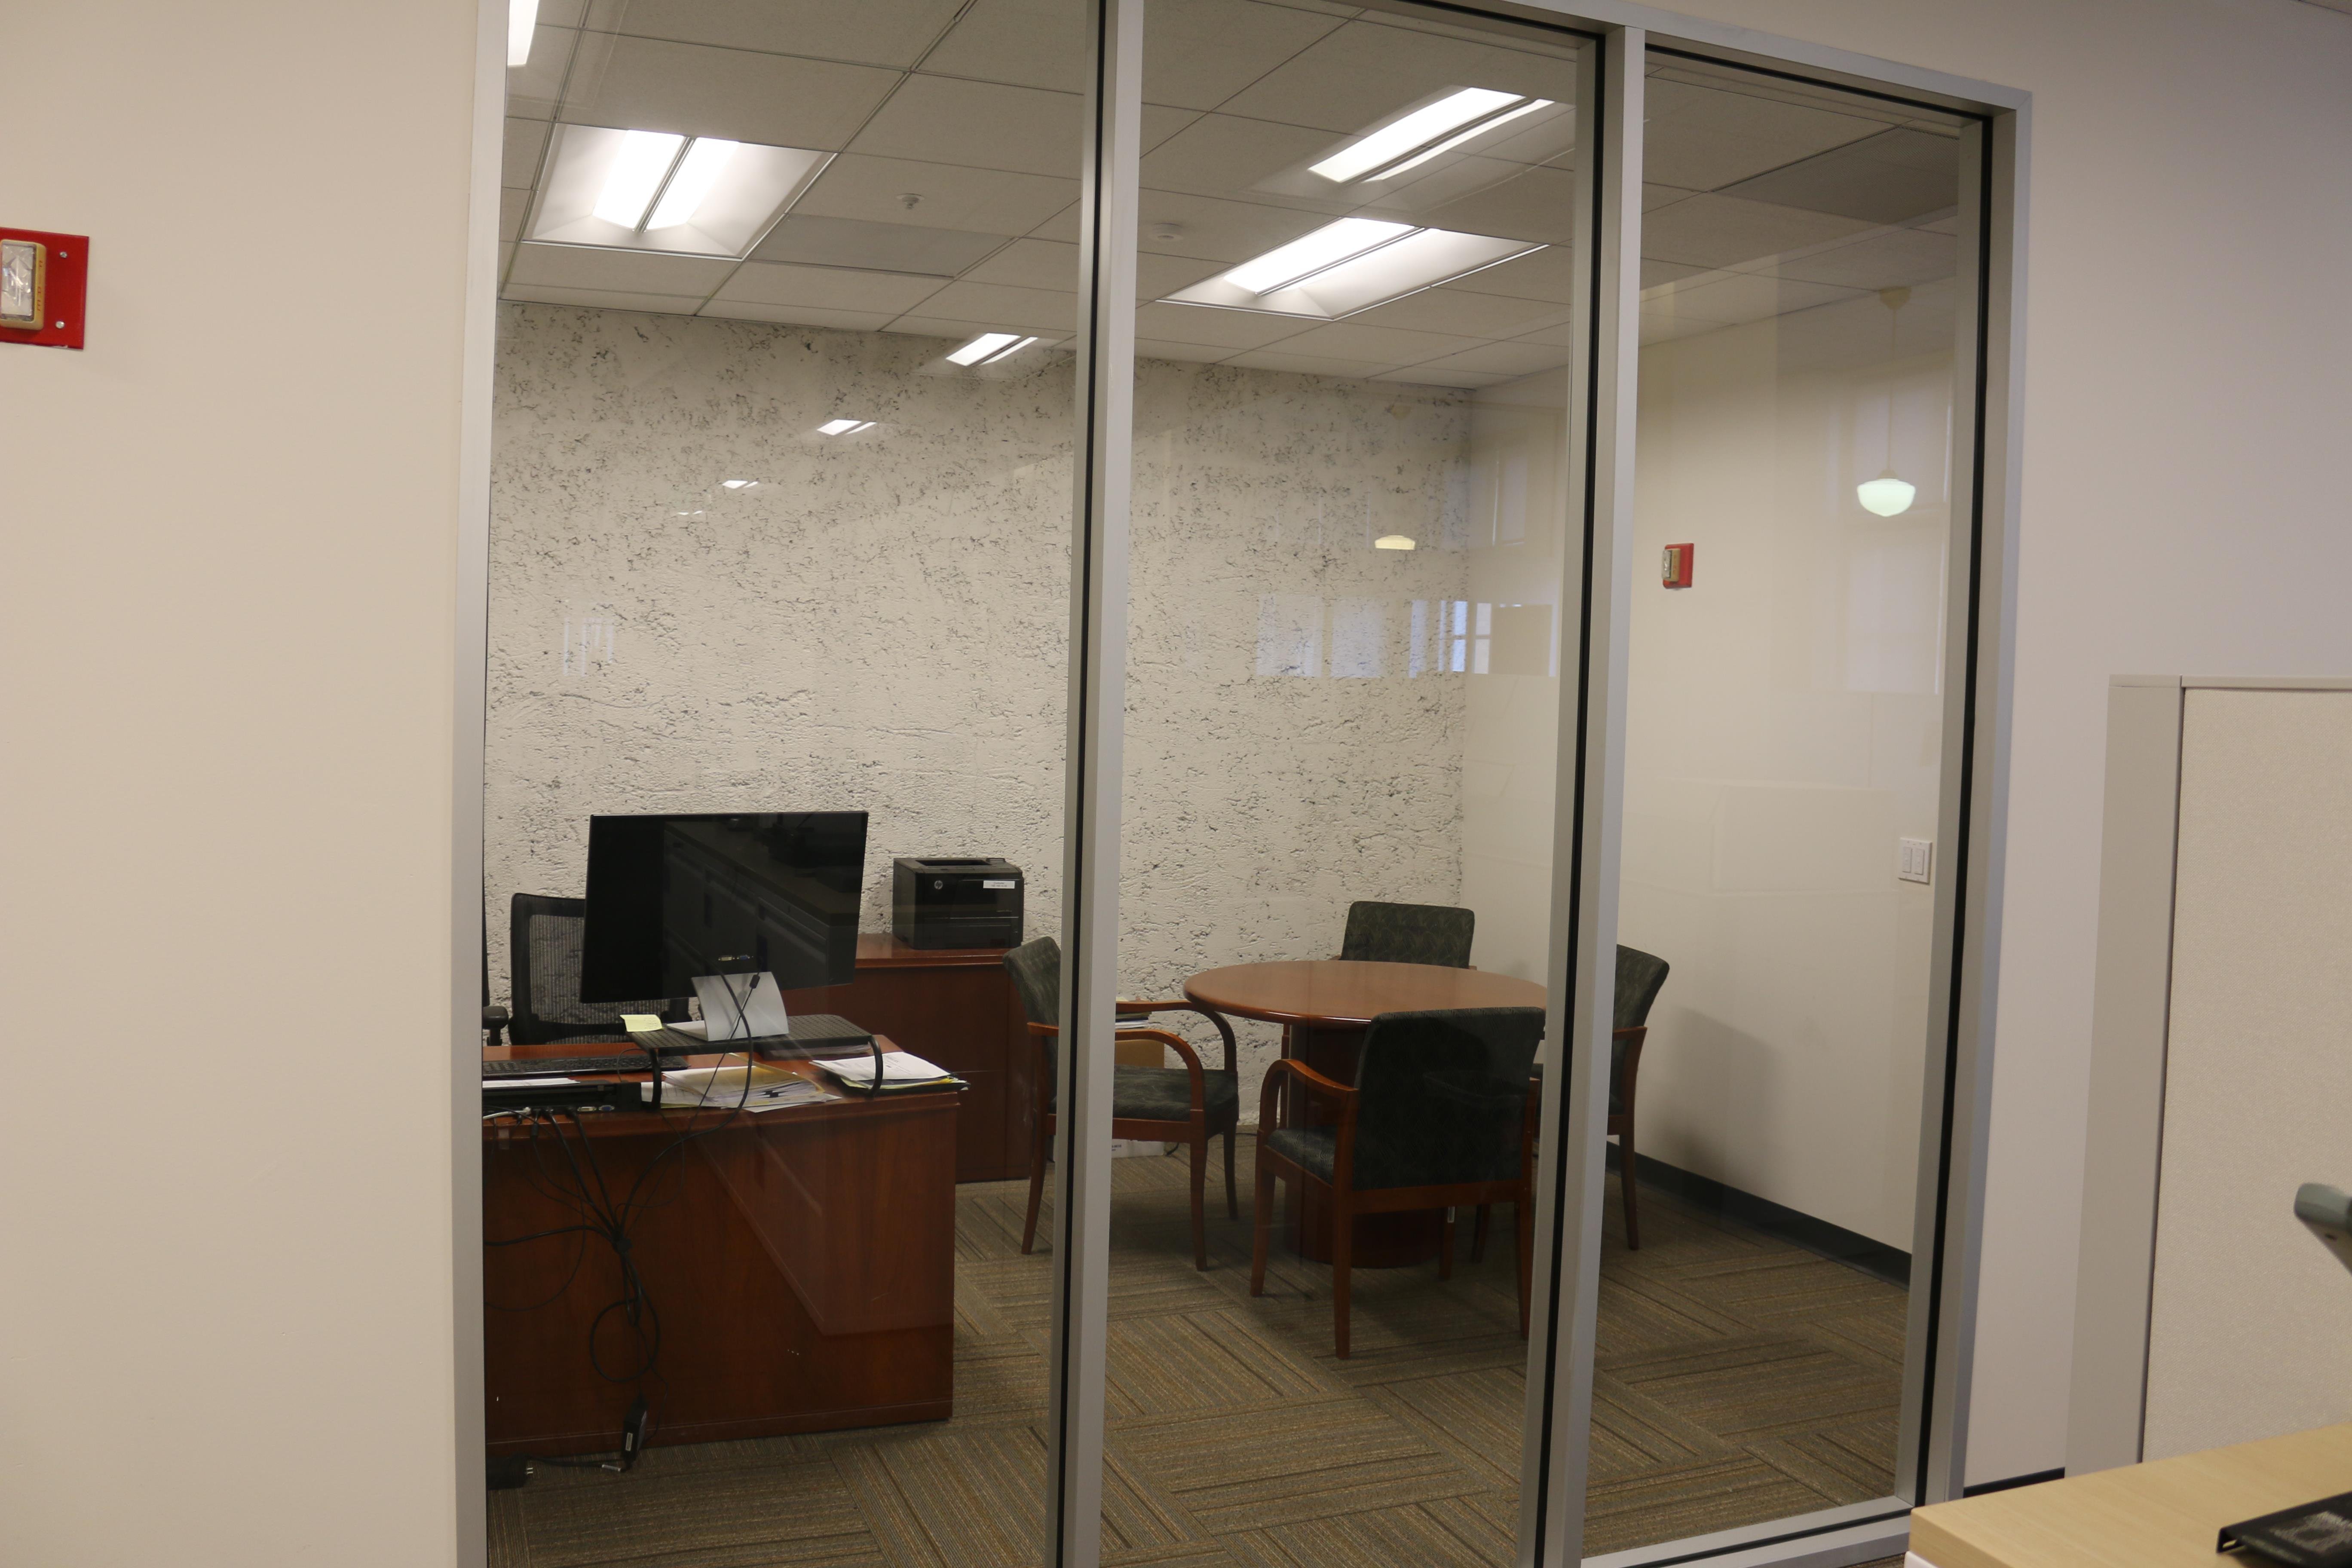 Suite 400 - 3,300 exclusive square feet - move in ready - Office Suite 1